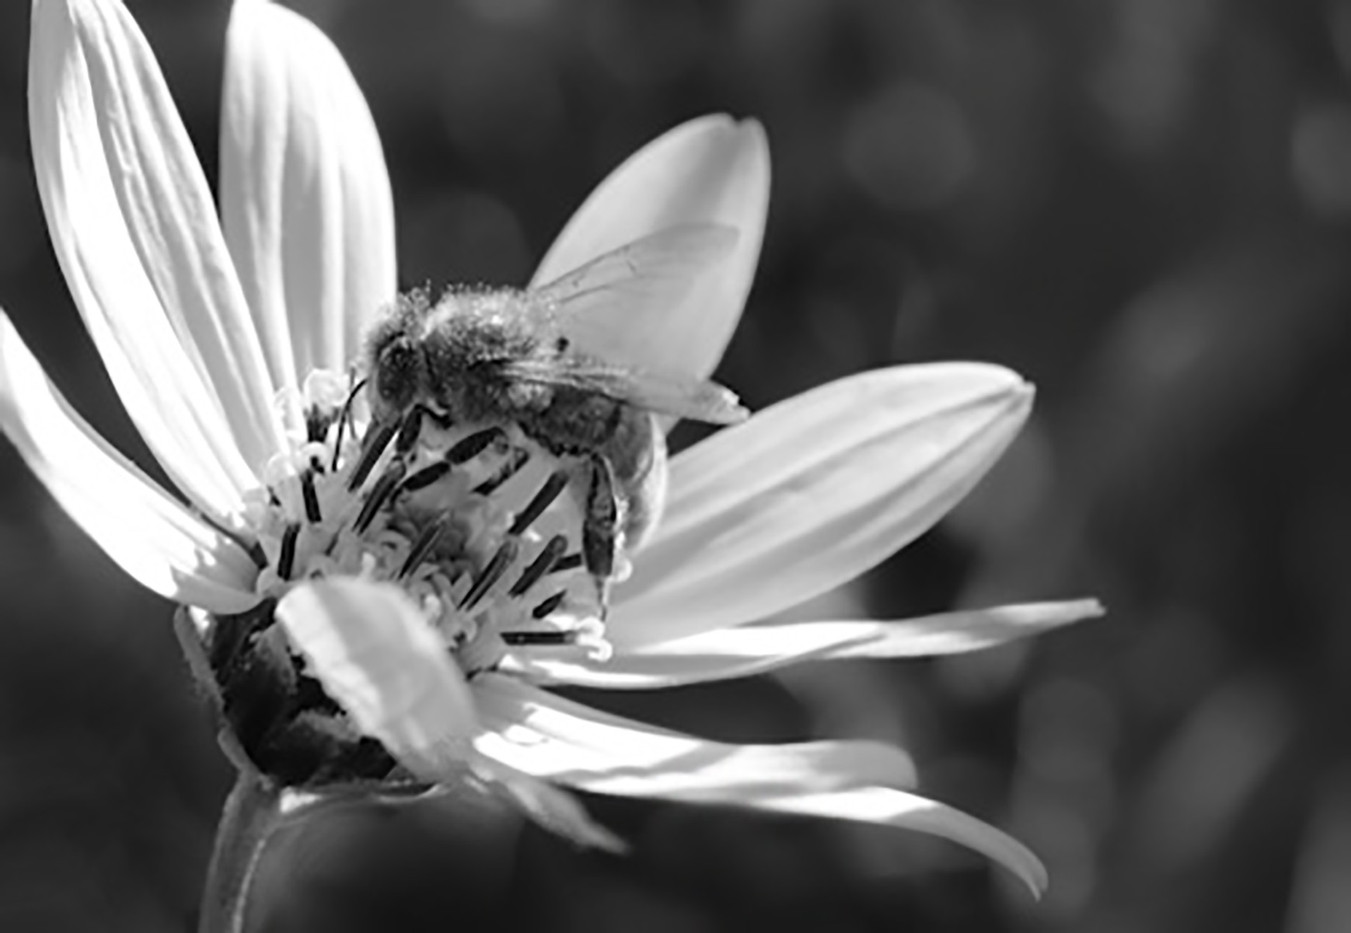 14 BUSY LITTLE BEE by Nicola King